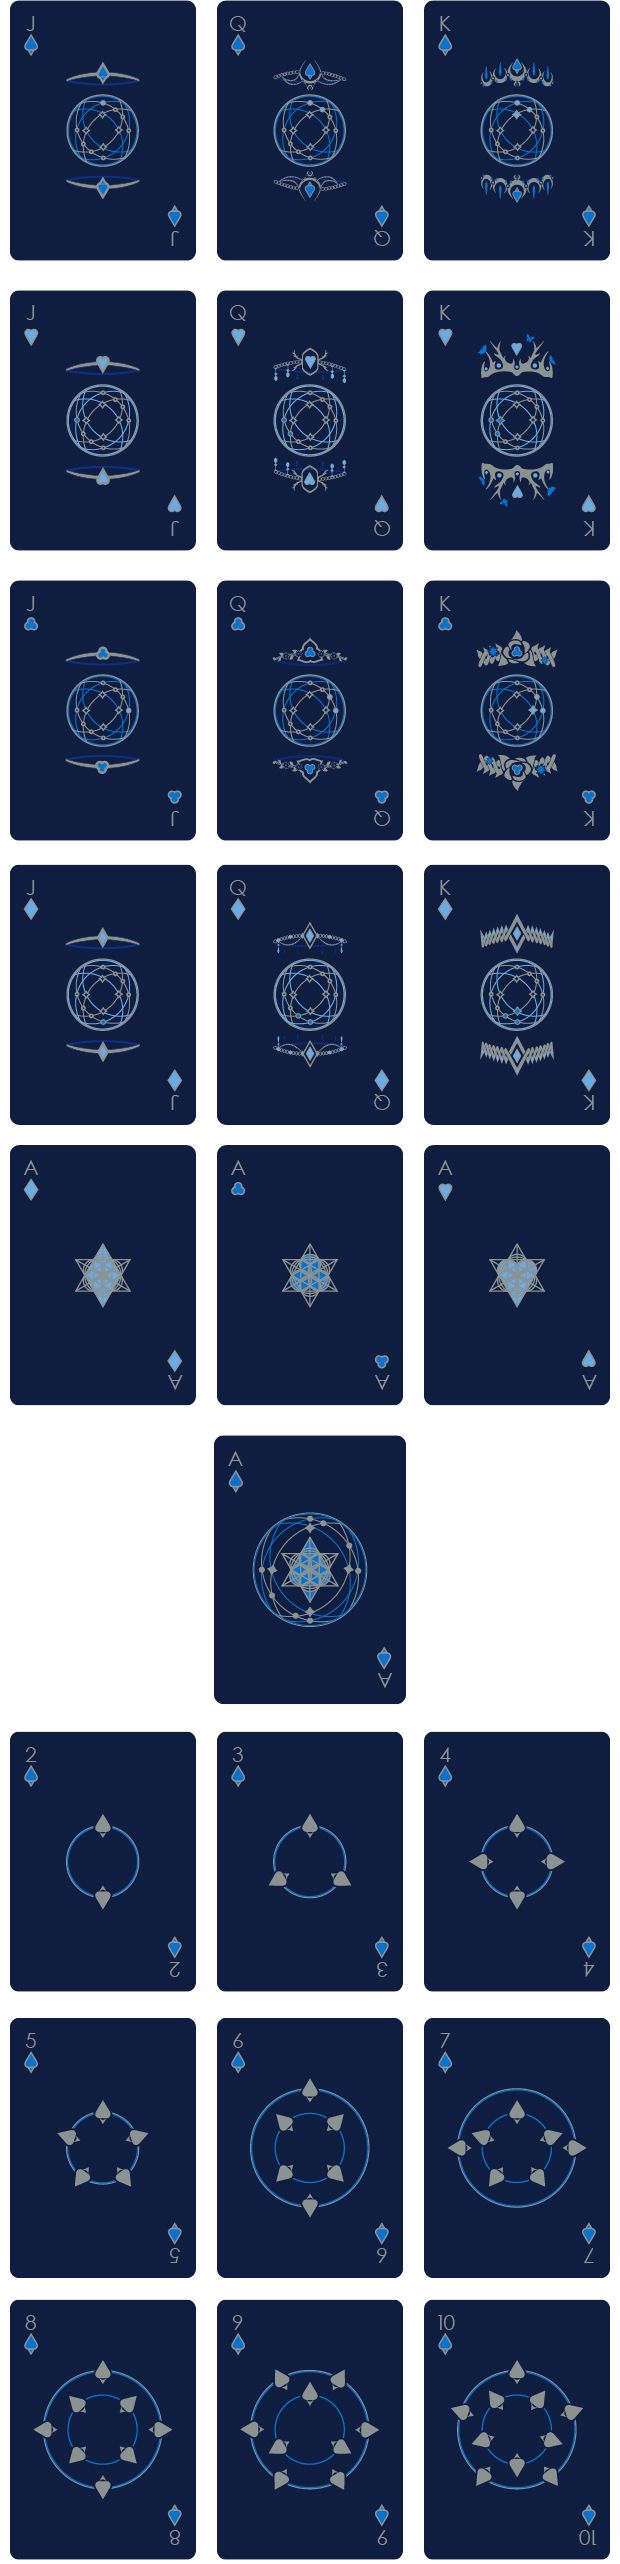 Bicycle® Arcana Playing Cards by Colton Marshall — Kickstarter